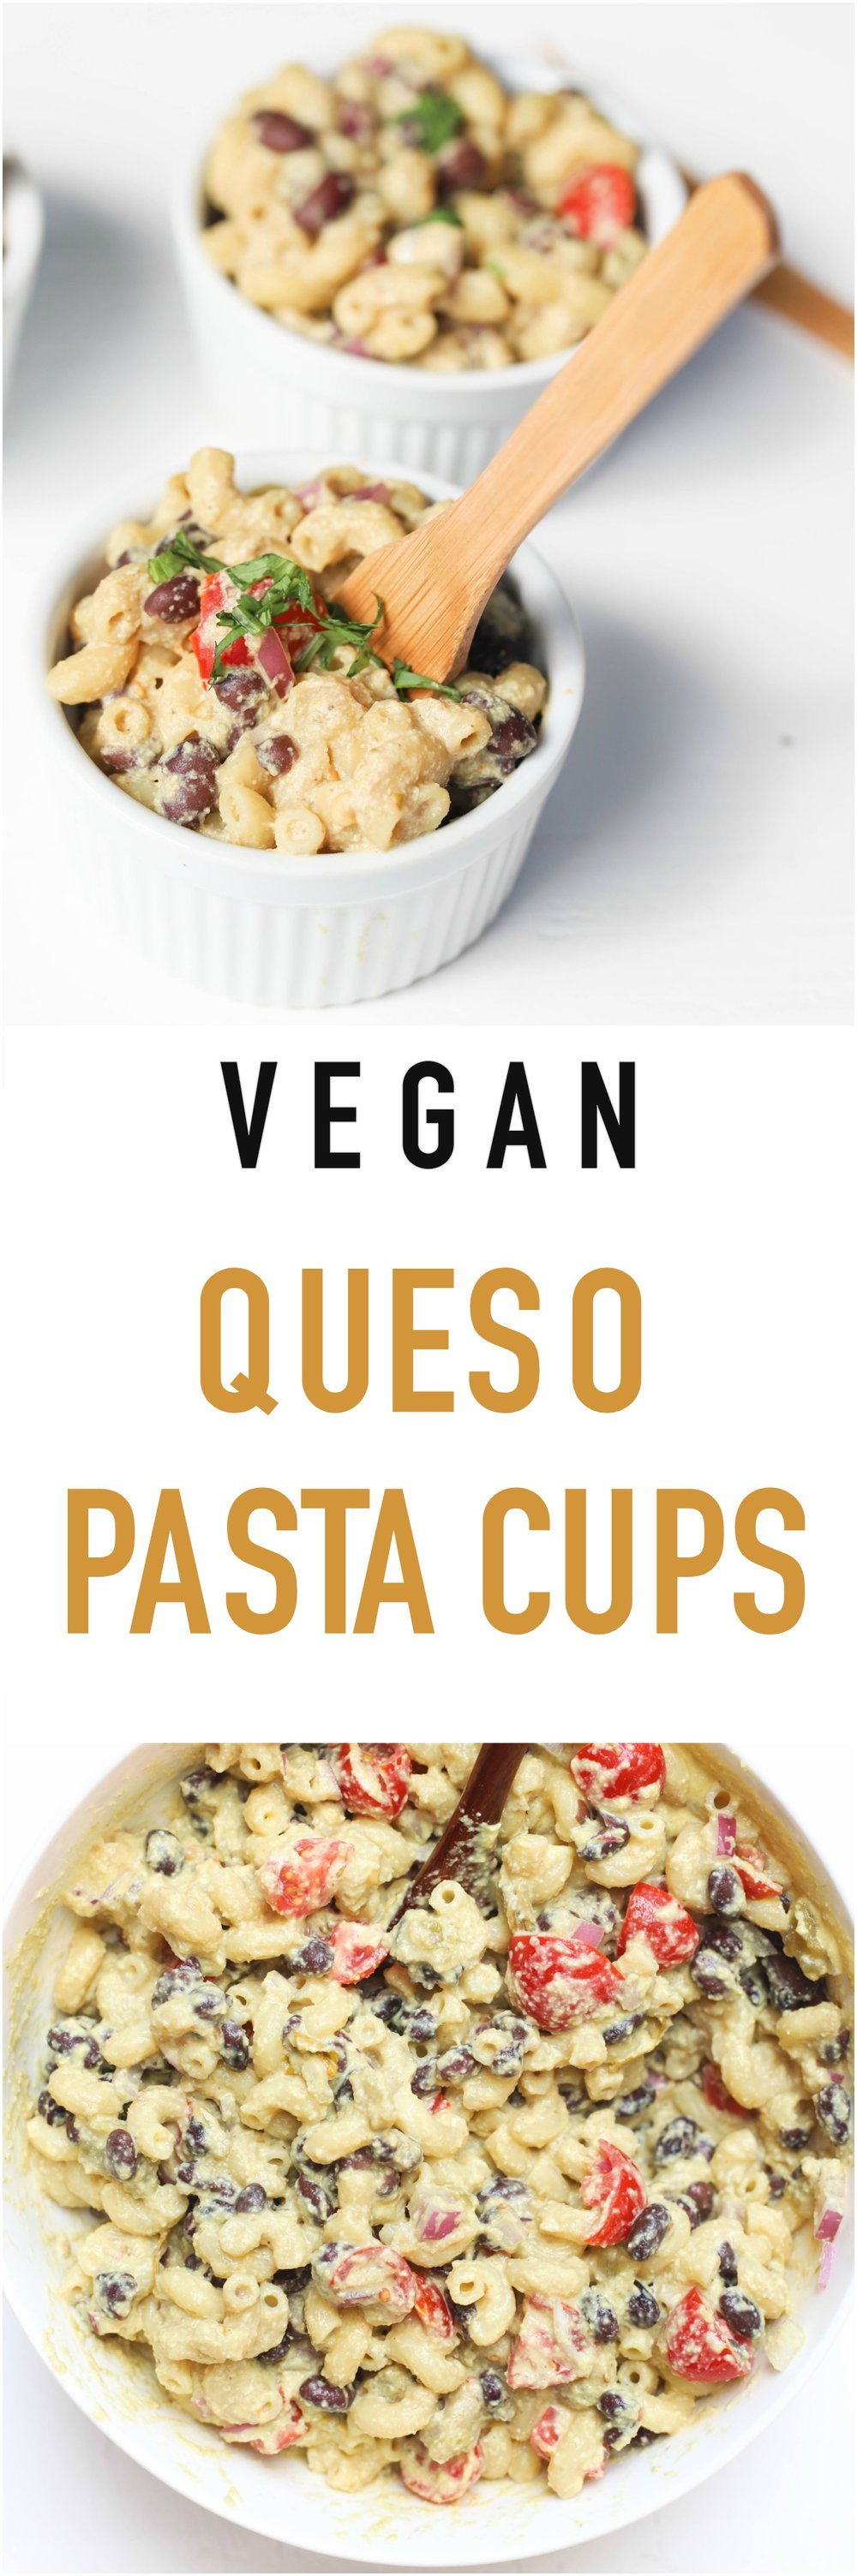 Vegan Queso Pasta Cups are made with  plant-based ingredients, packed with protein, and can be enjoyed as a meal or a side.